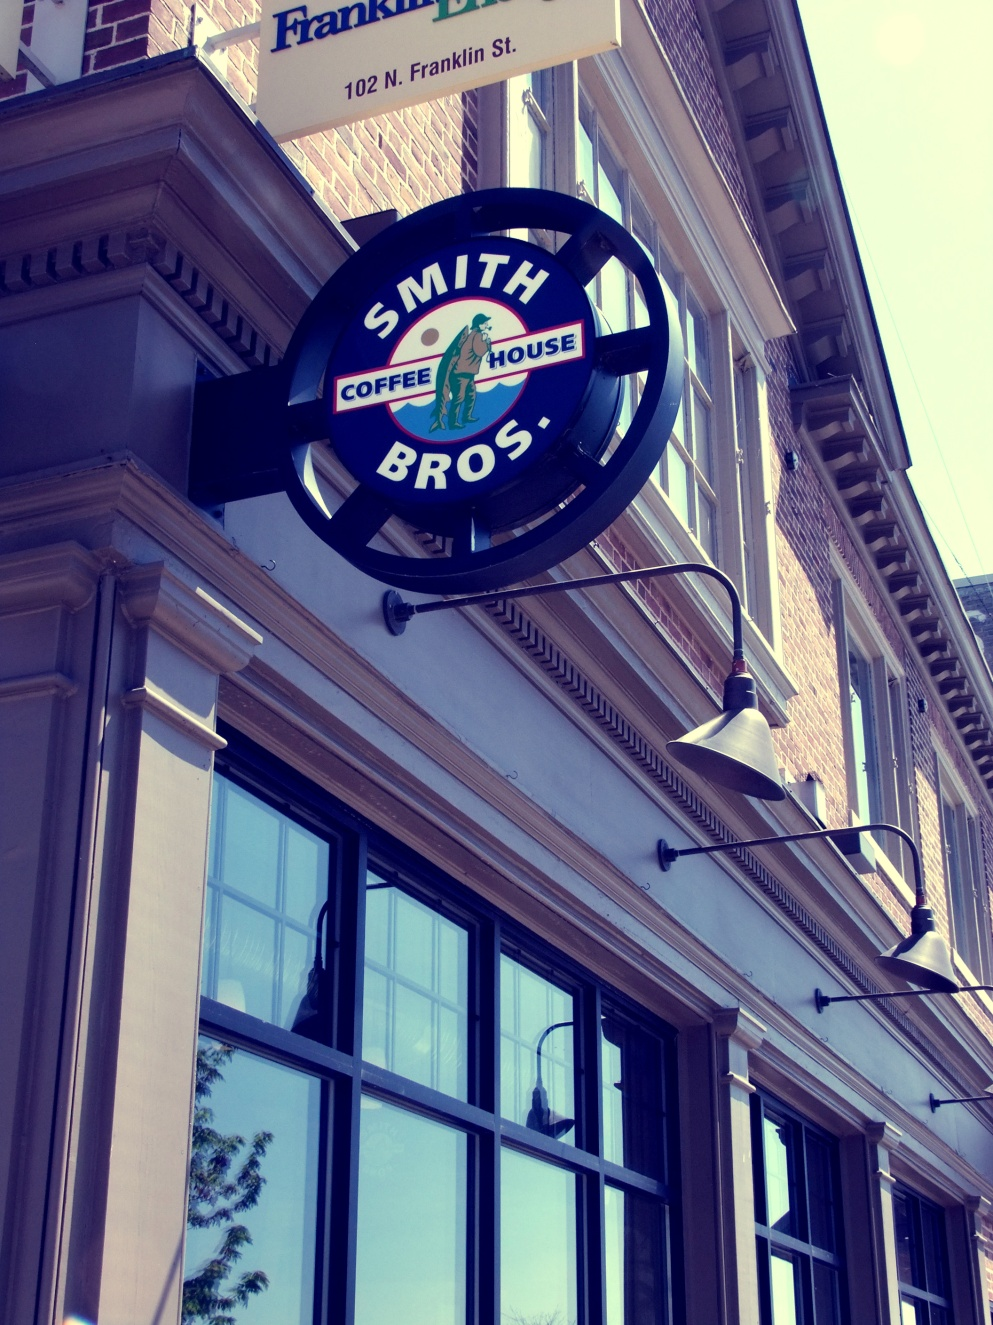 Step on in to Smith Bros. Coffee House!